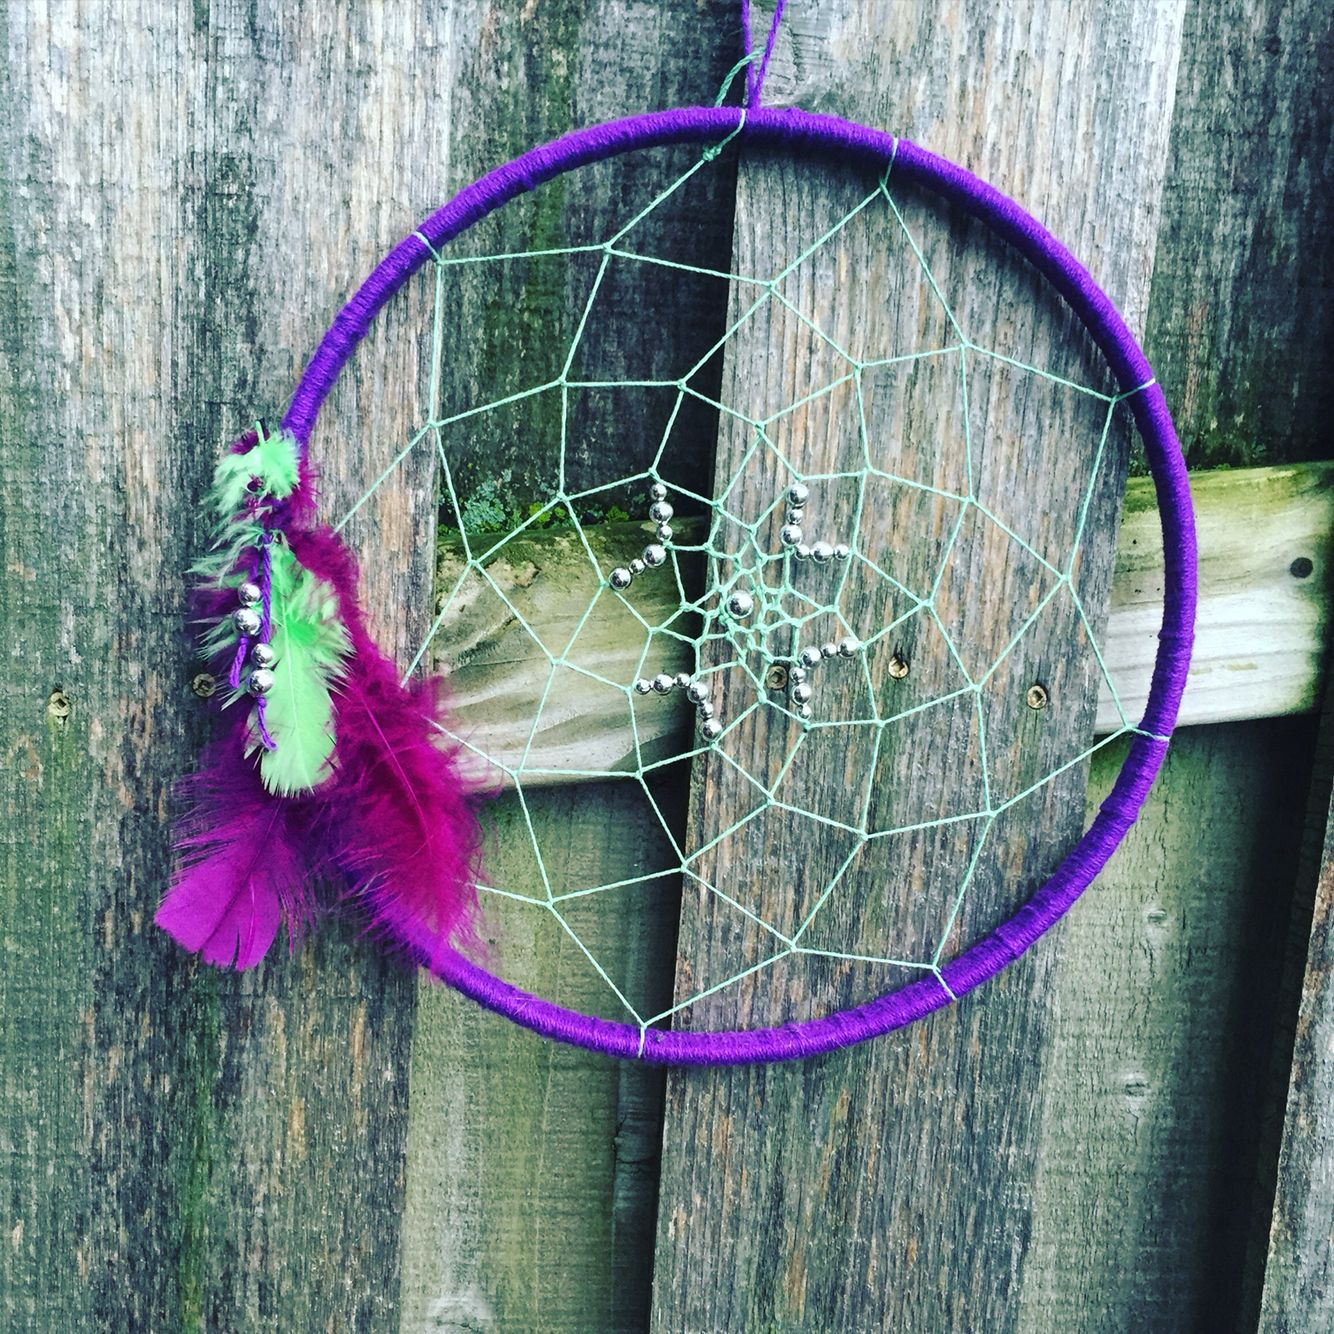 Dream catcher for sale  12in for $12 + $4 shipping  Email JohnsonDesignServices@gmail.com